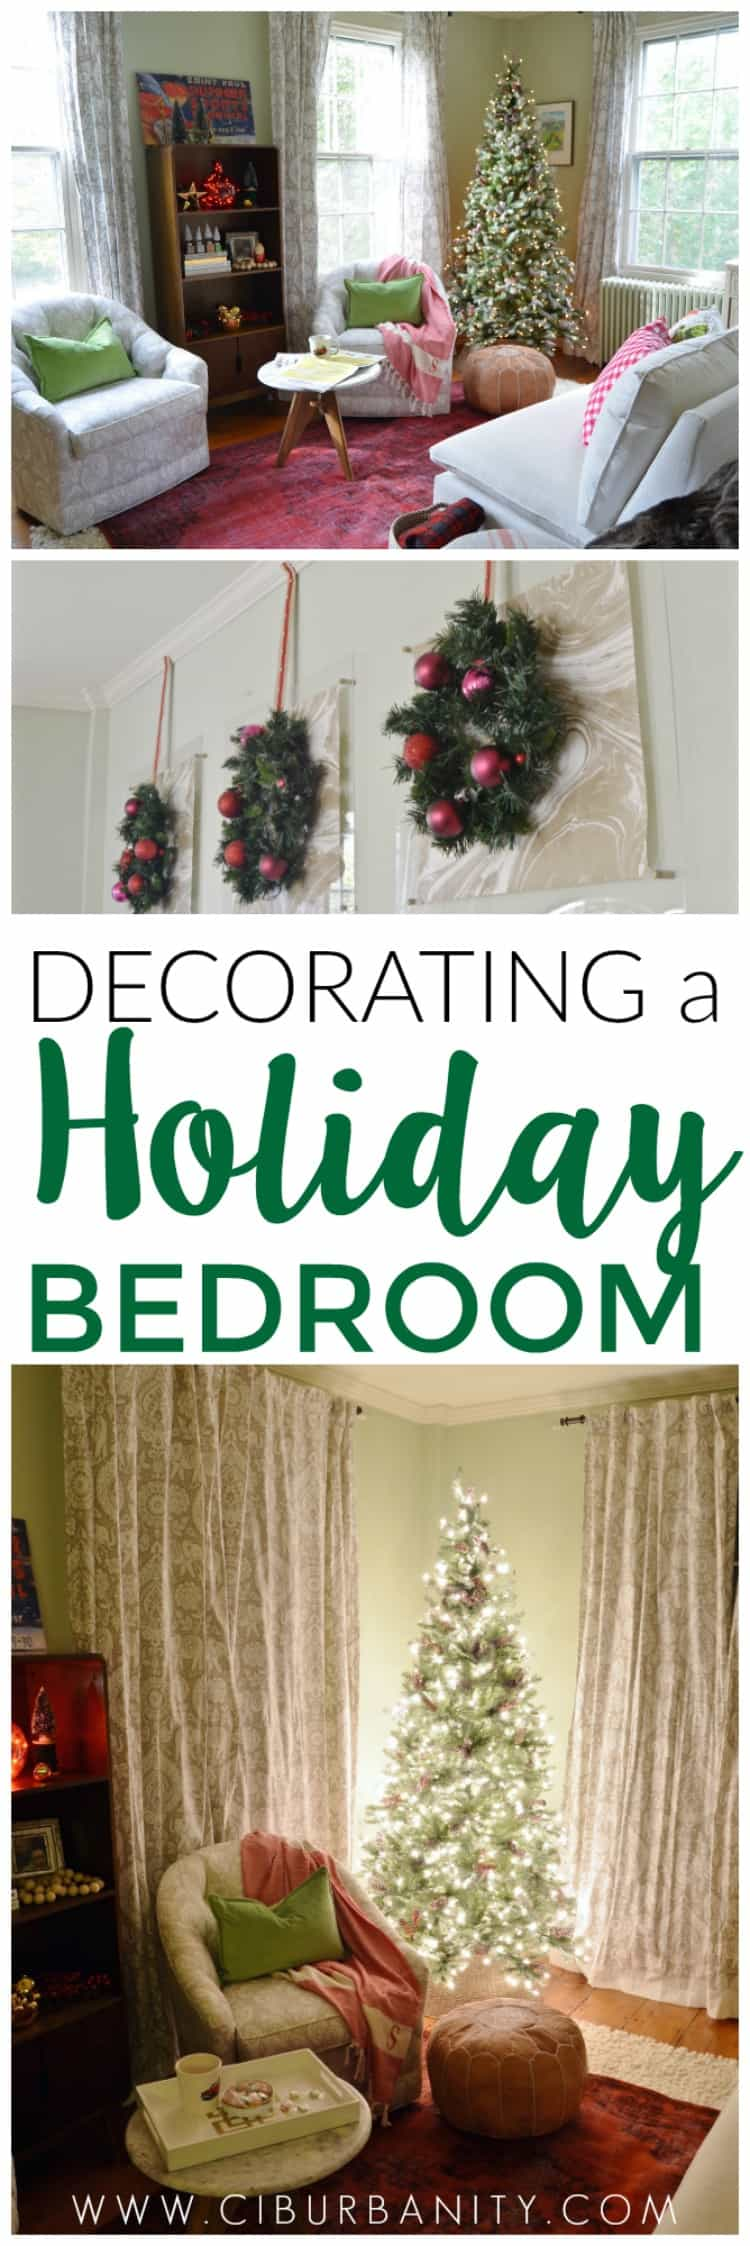 I love how festive and relaxing this bedroom looks decorated for Christmas.